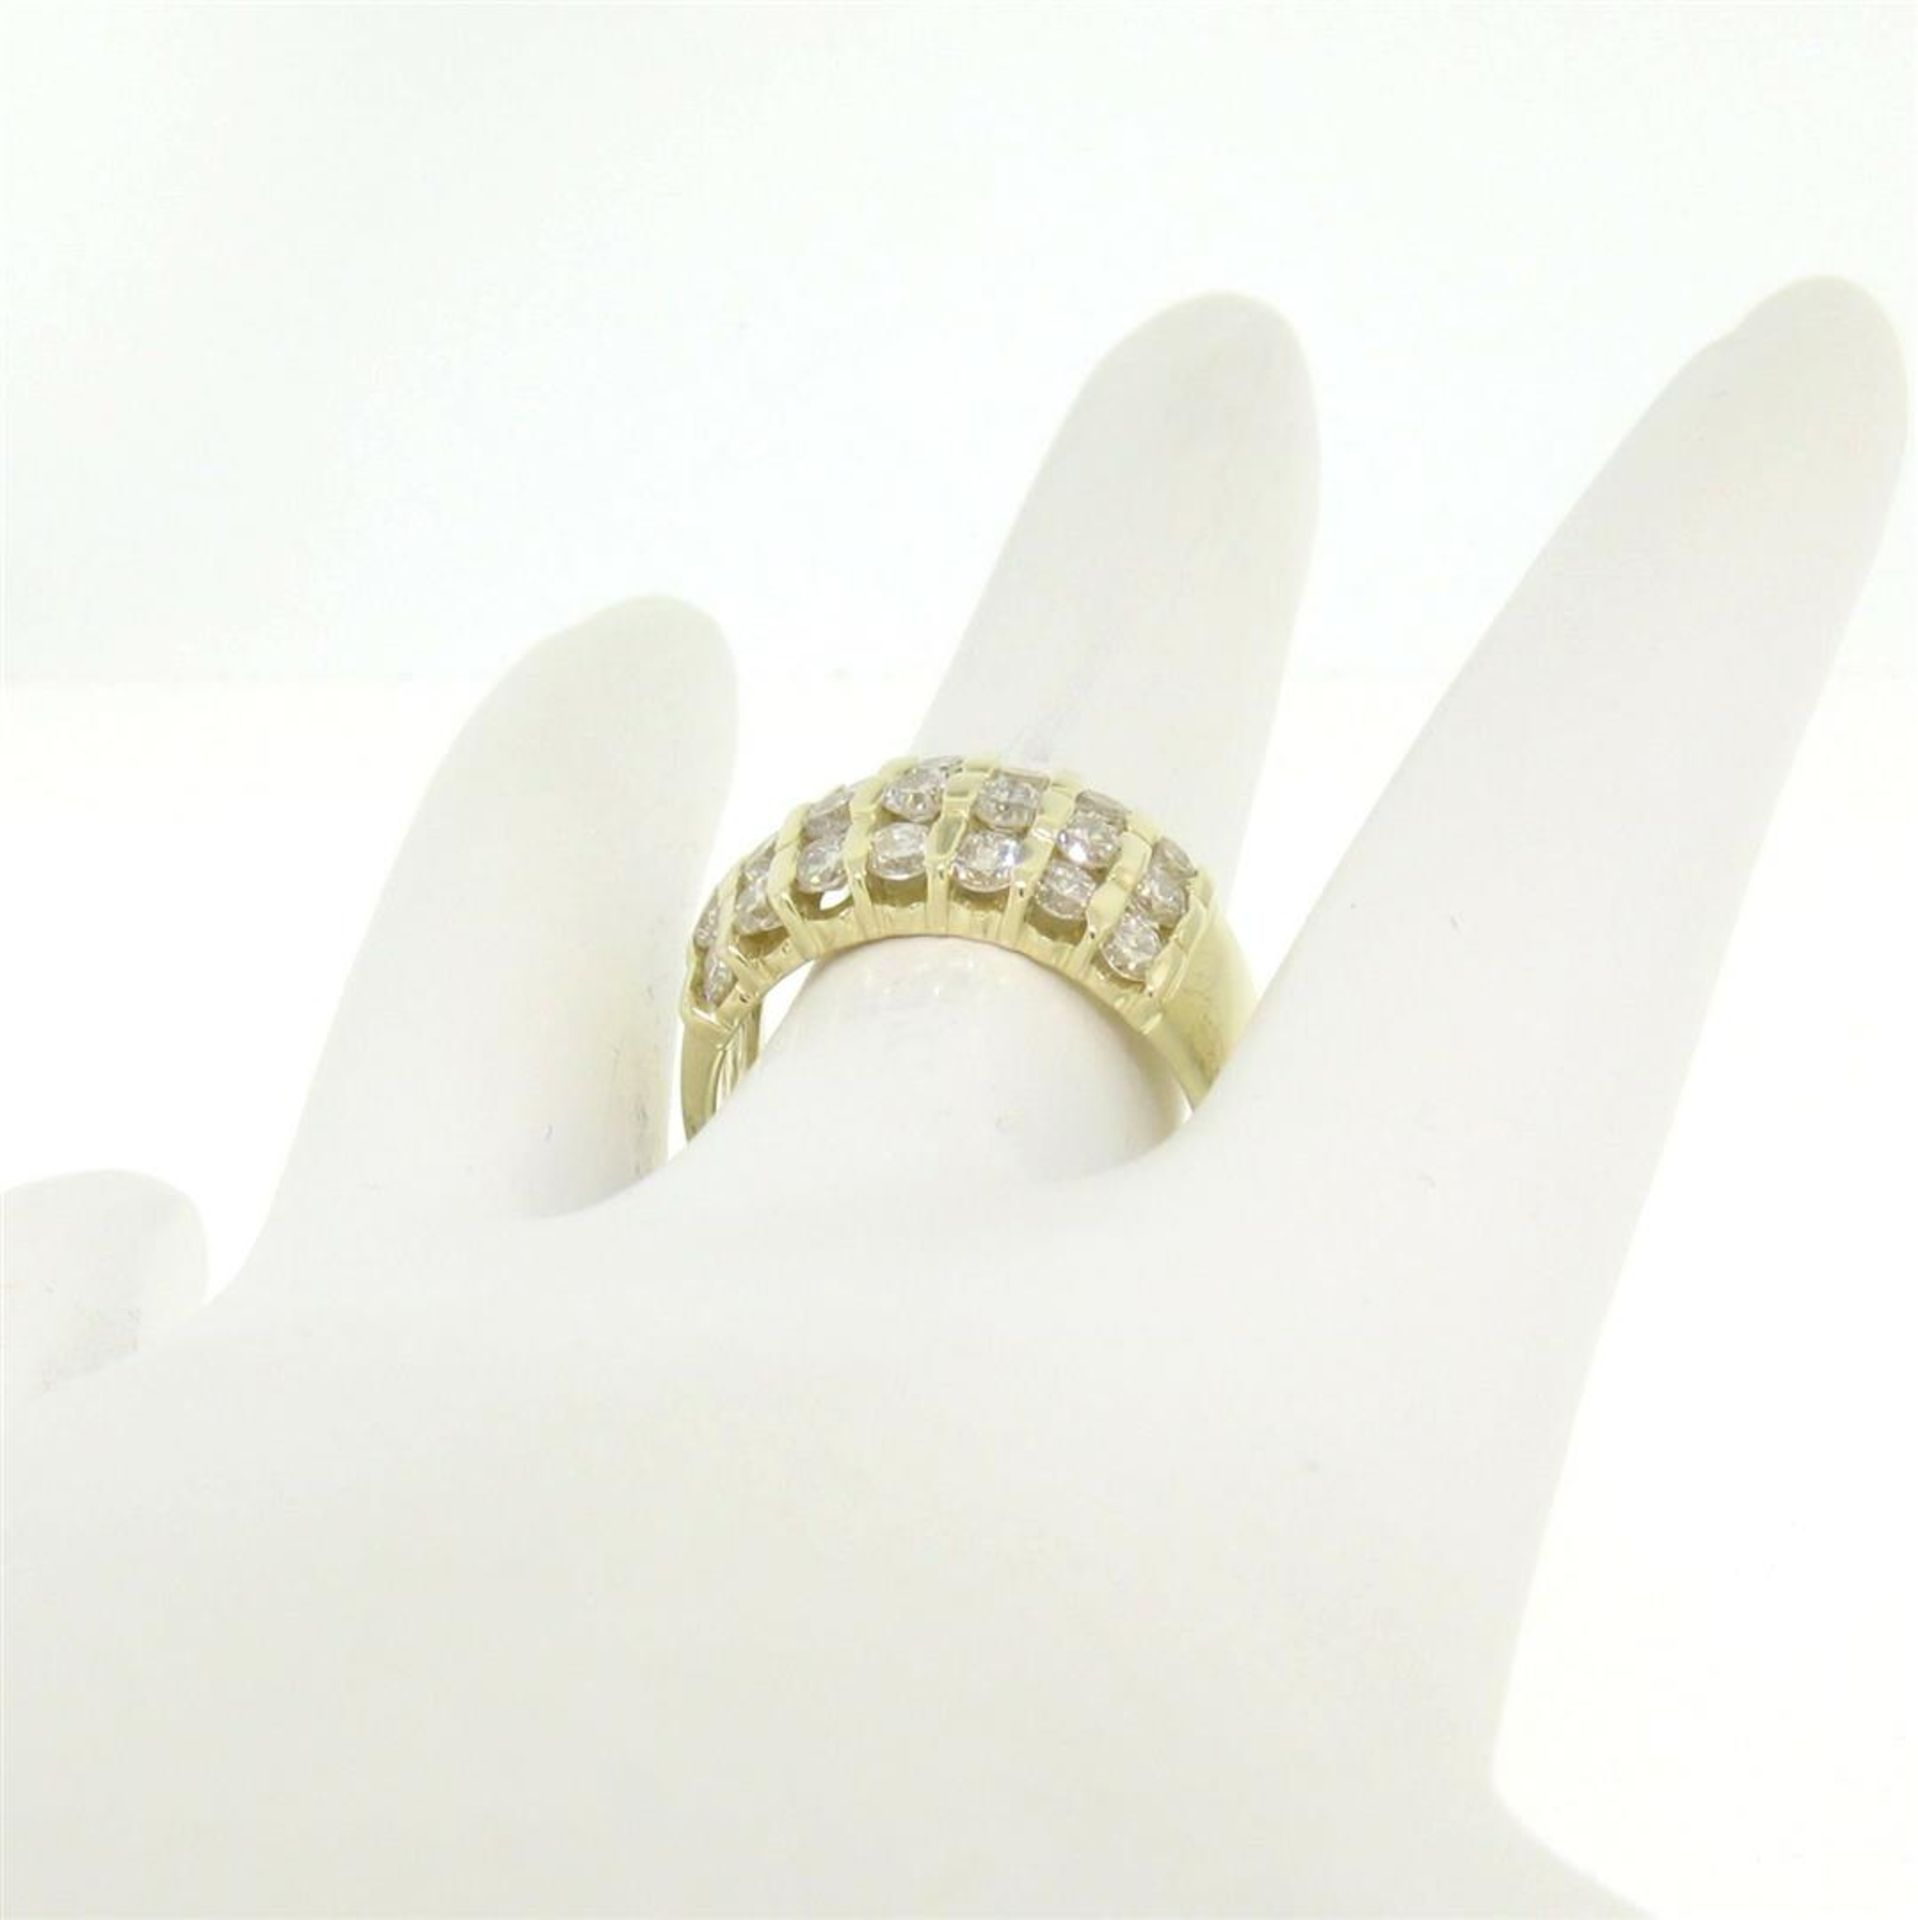 14kt Yellow Gold 1.48 ctw Bar Set Round Diamond Wide Band Ring - Image 6 of 7